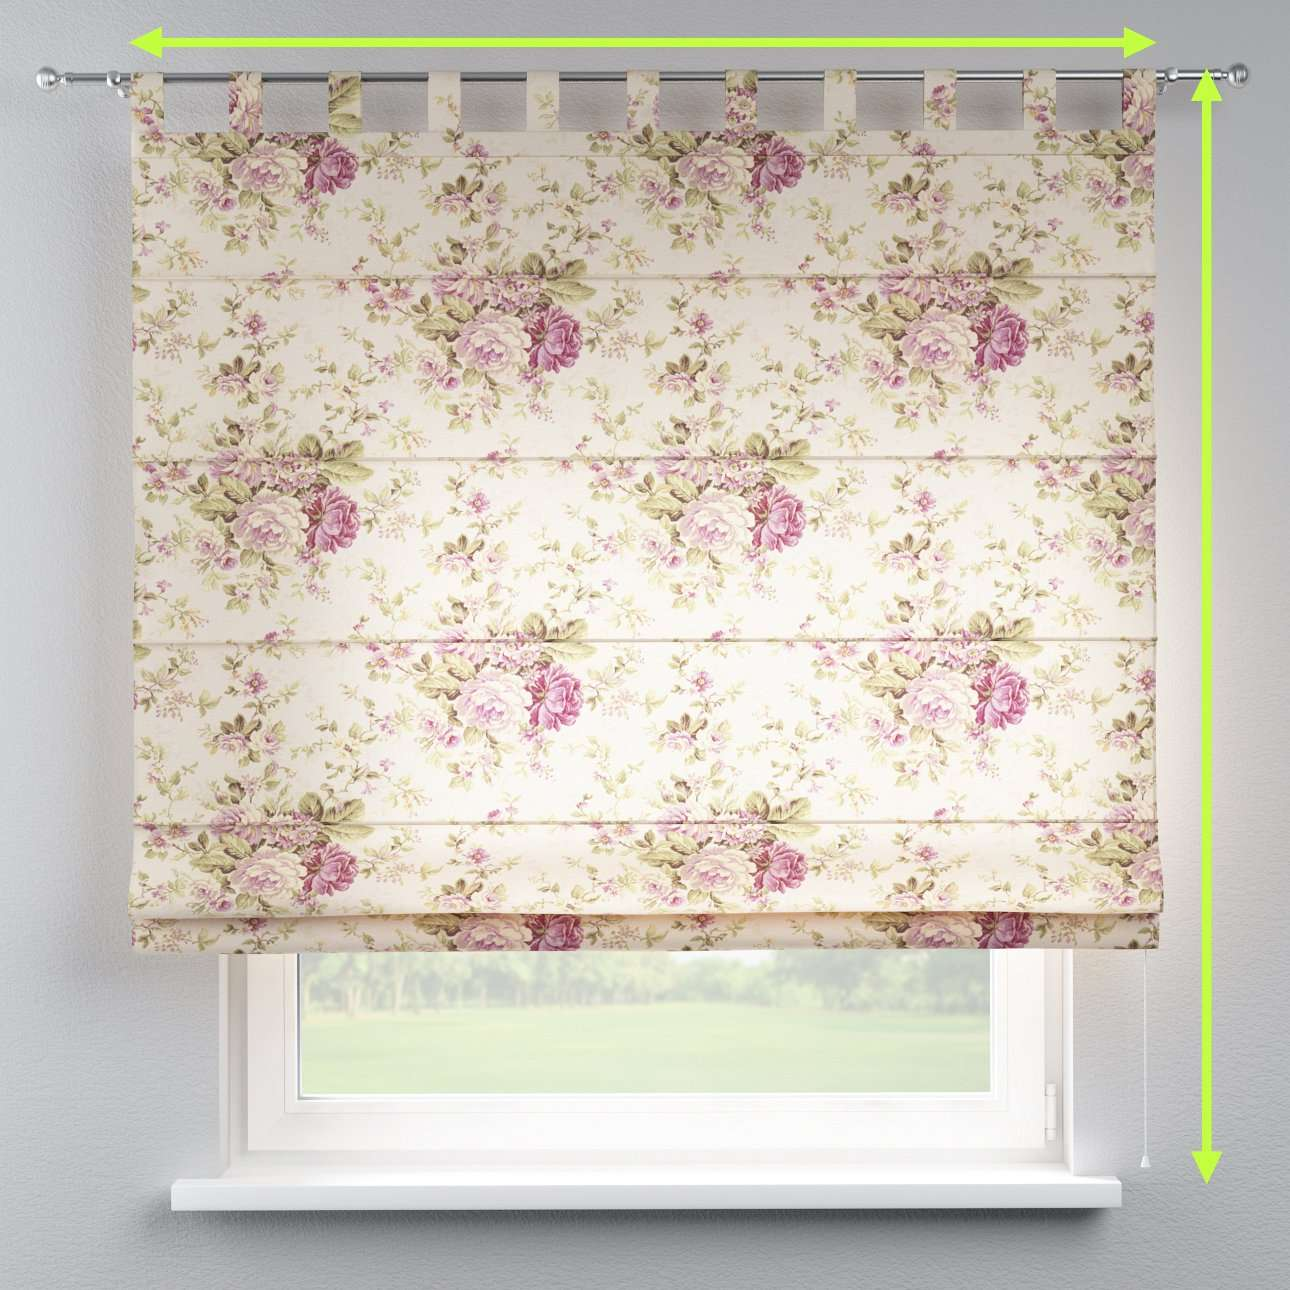 Verona tab top roman blind in collection Londres, fabric: 122-08